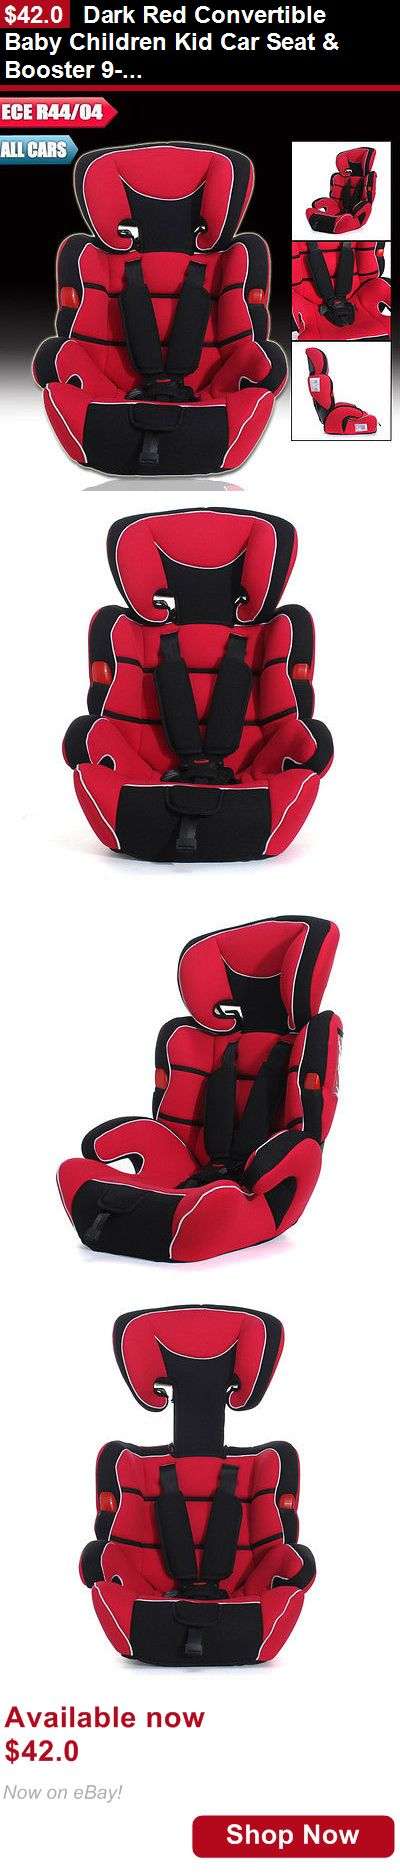 Convertible Car Seat: Dark Red Convertible Baby Children Kid Car Seat And Booster 9-36Kg 9Mon -12Years BUY IT NOW ONLY: $42.0